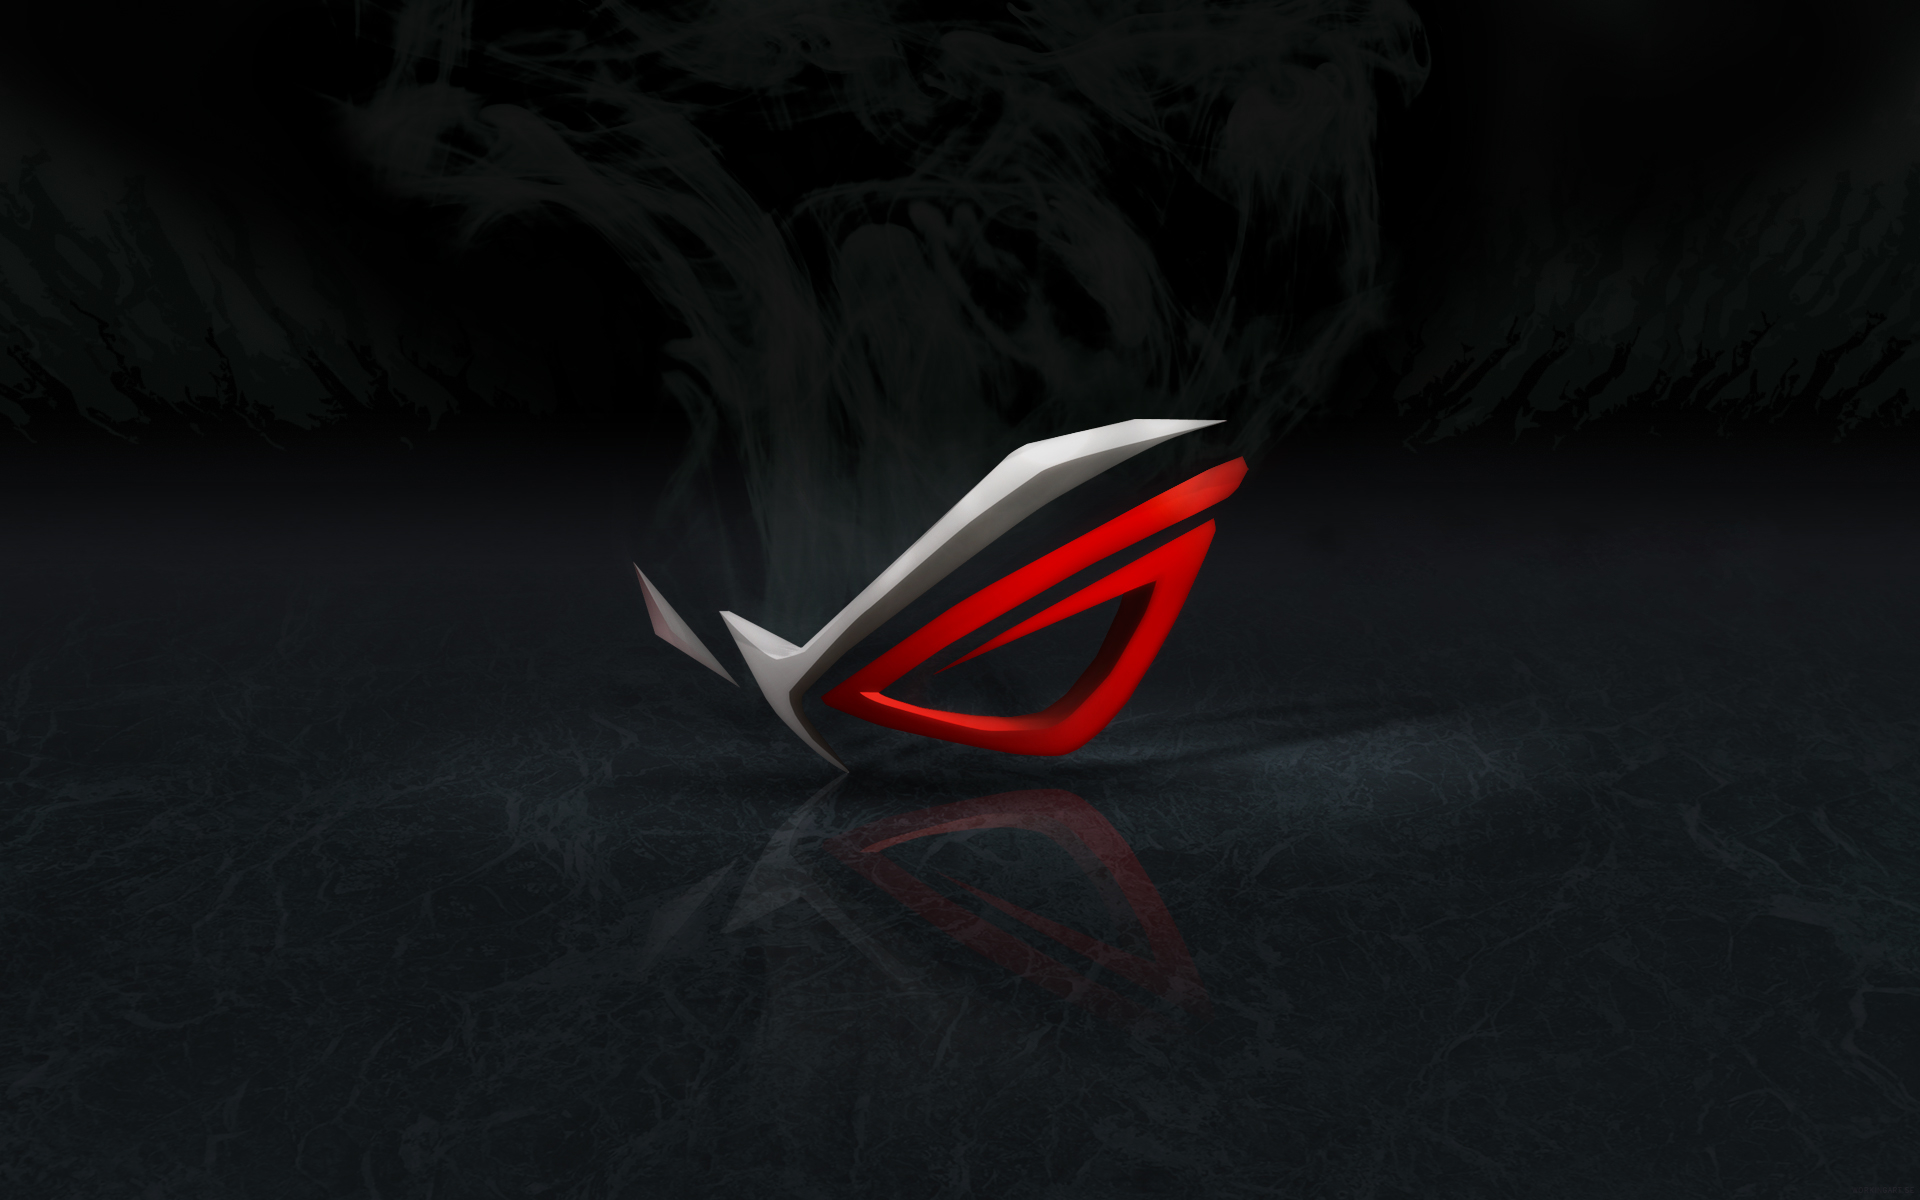 asus red tecnology wallpaper - photo #29